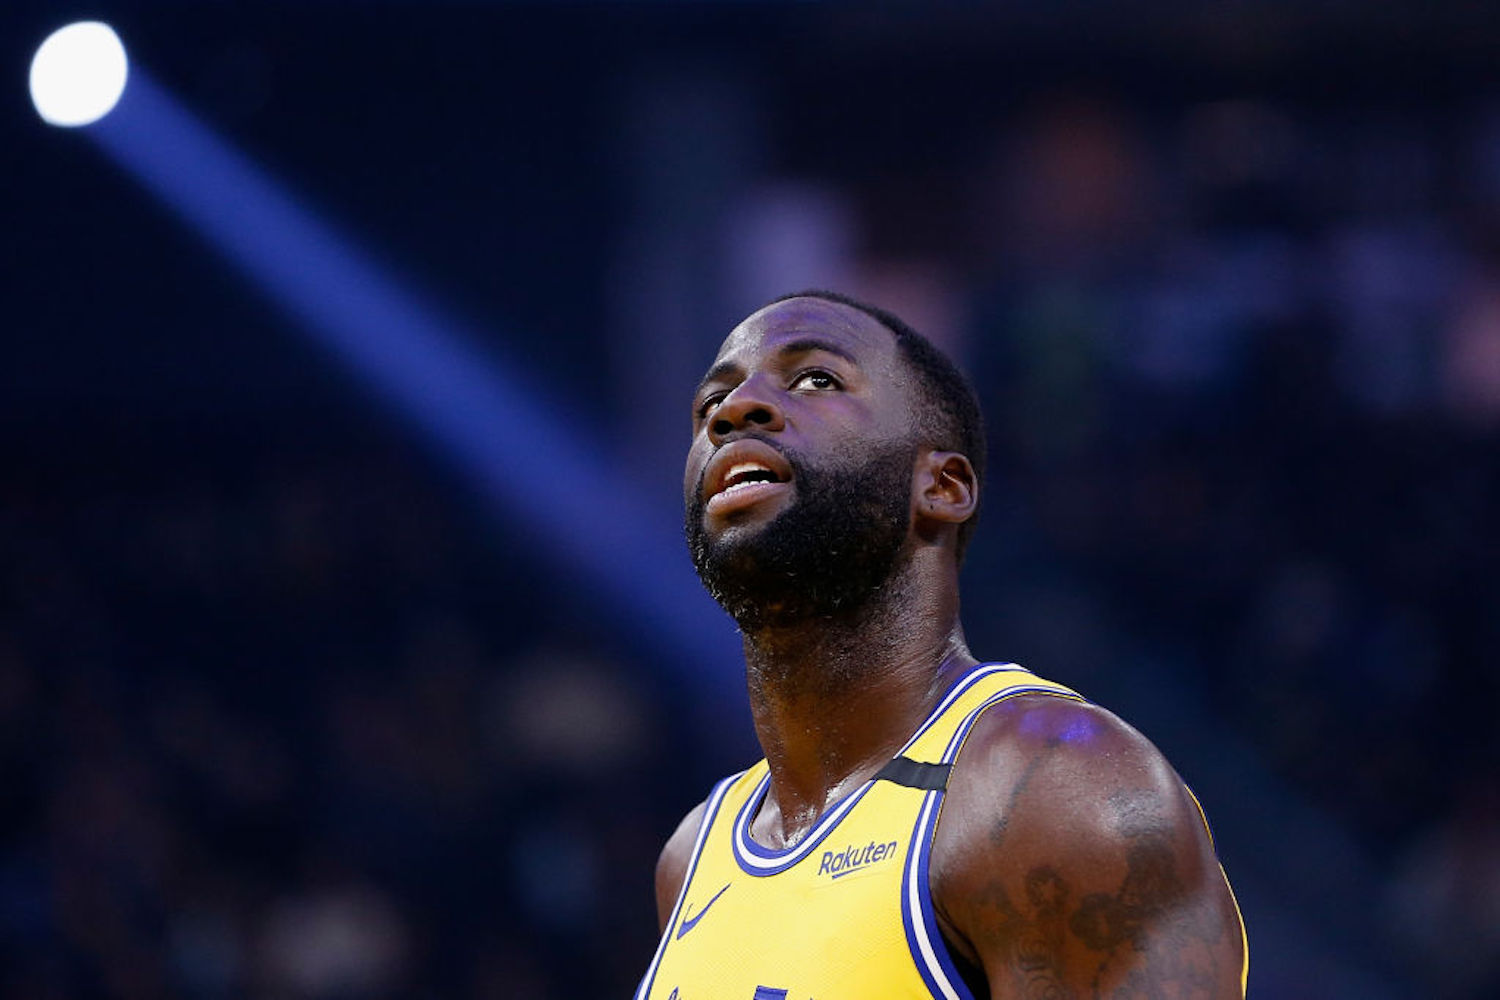 Draymond Green Sends a Passionate Message About 'Shameful' Washington, D.C. Protests